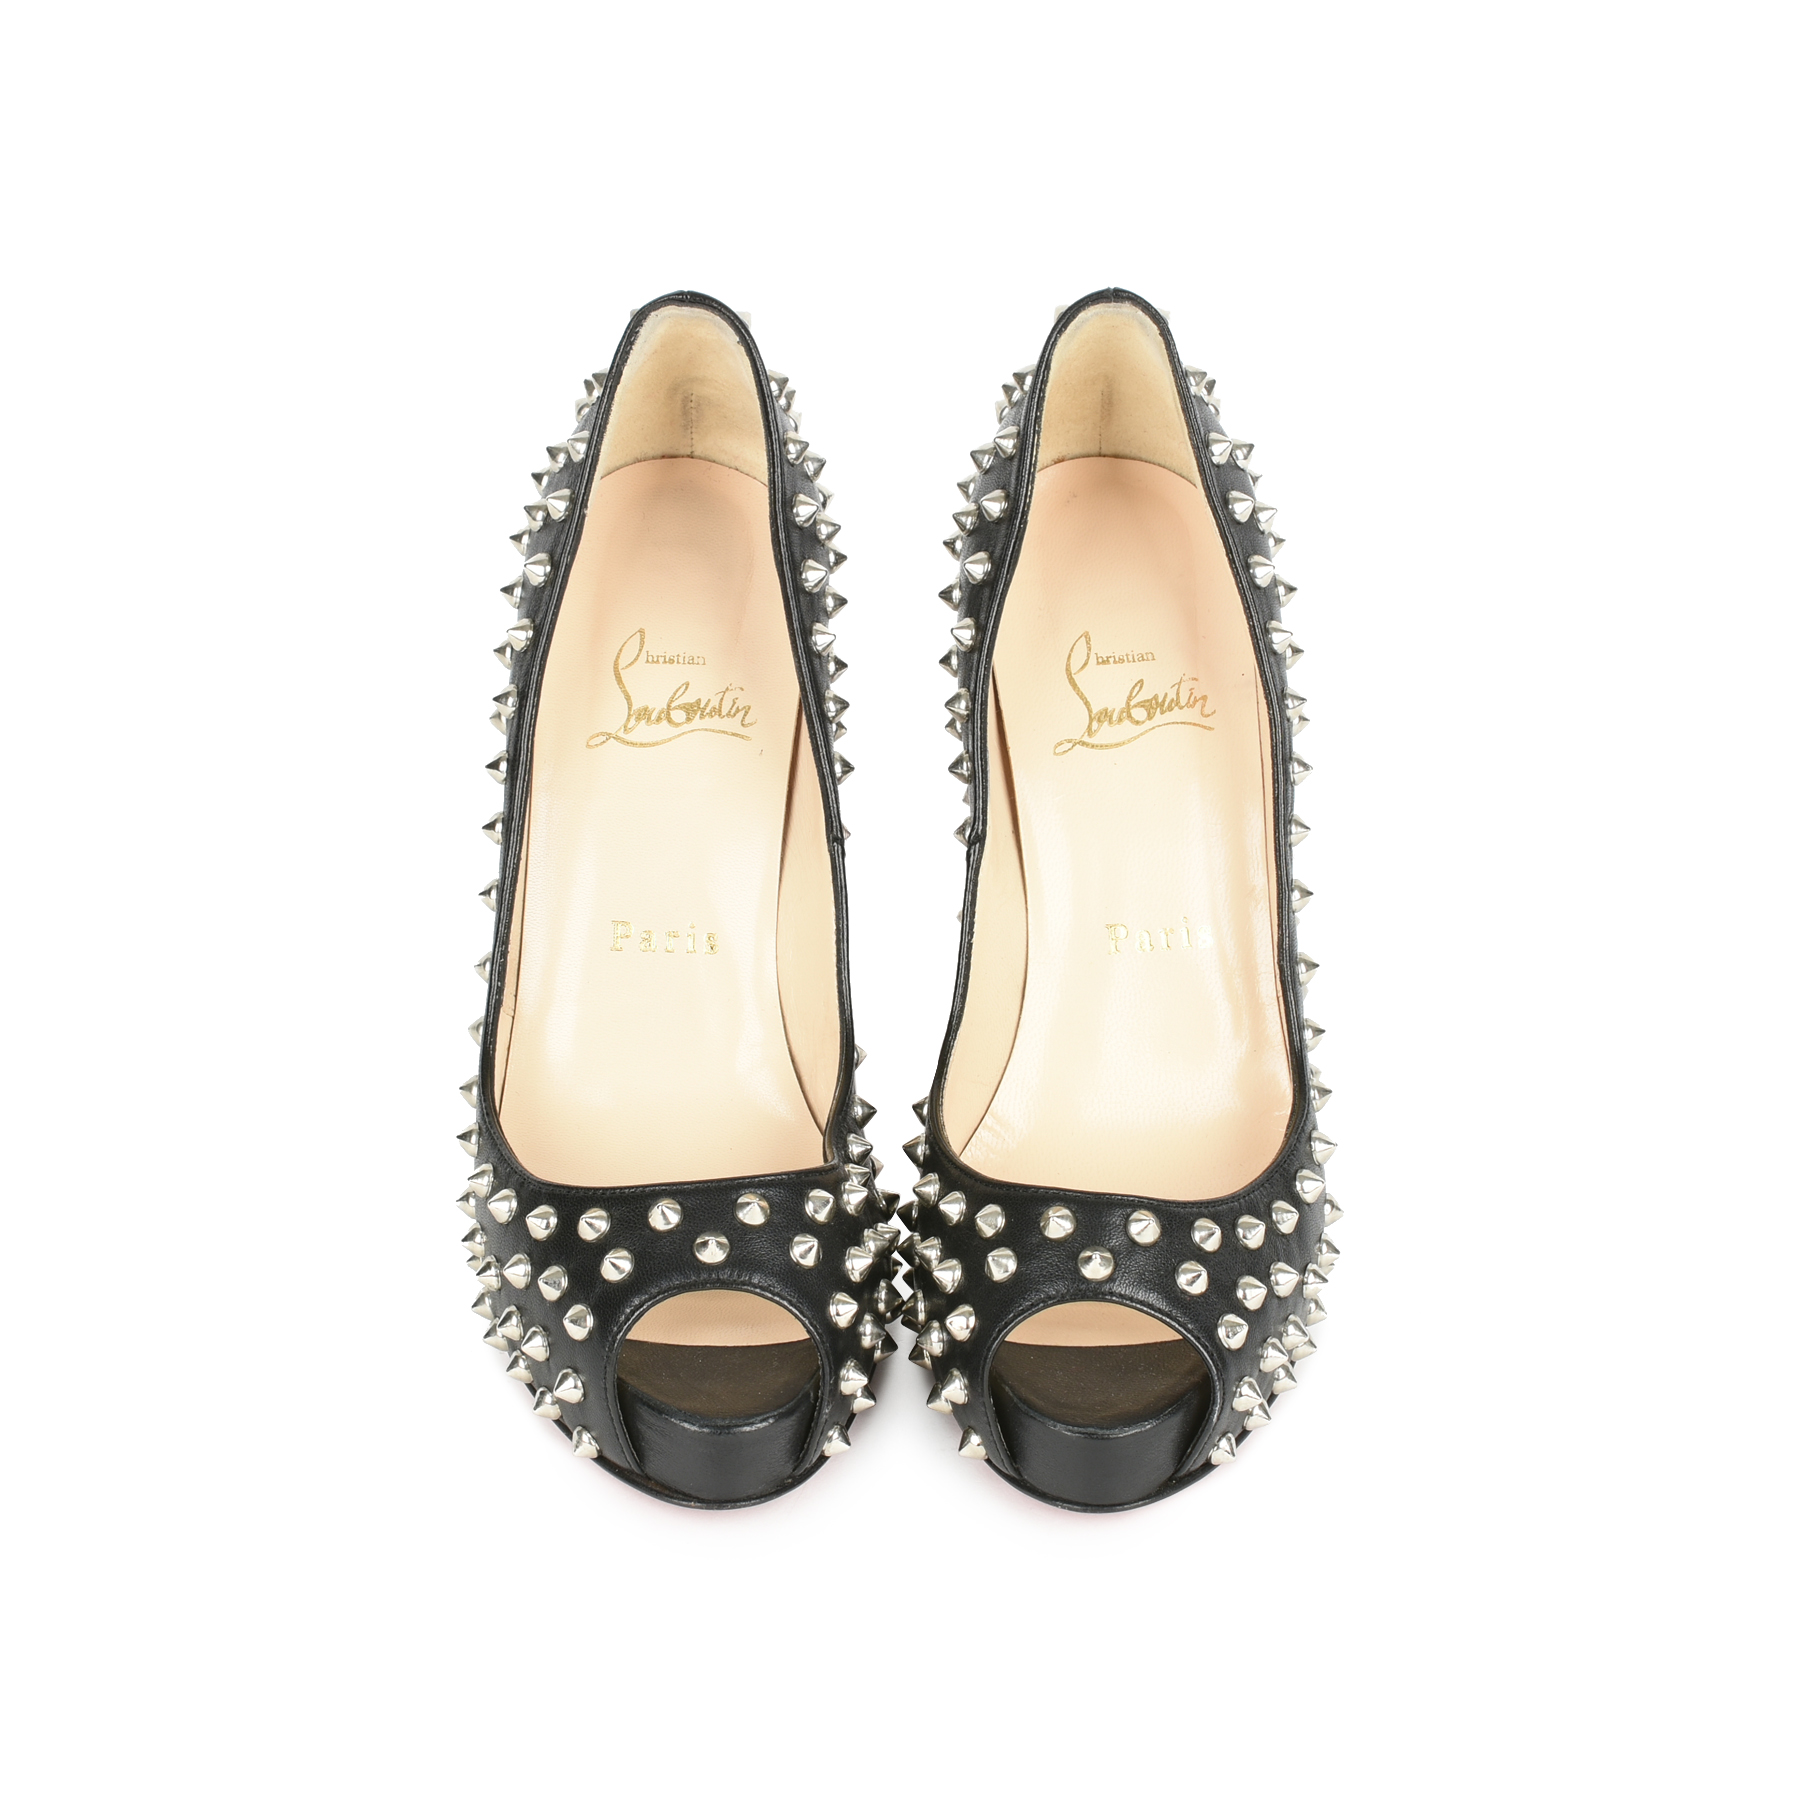 1c126b5117c9 Authentic Second Hand Christian Louboutin Very Prive Spikes Pumps  (PSS-080-00257)